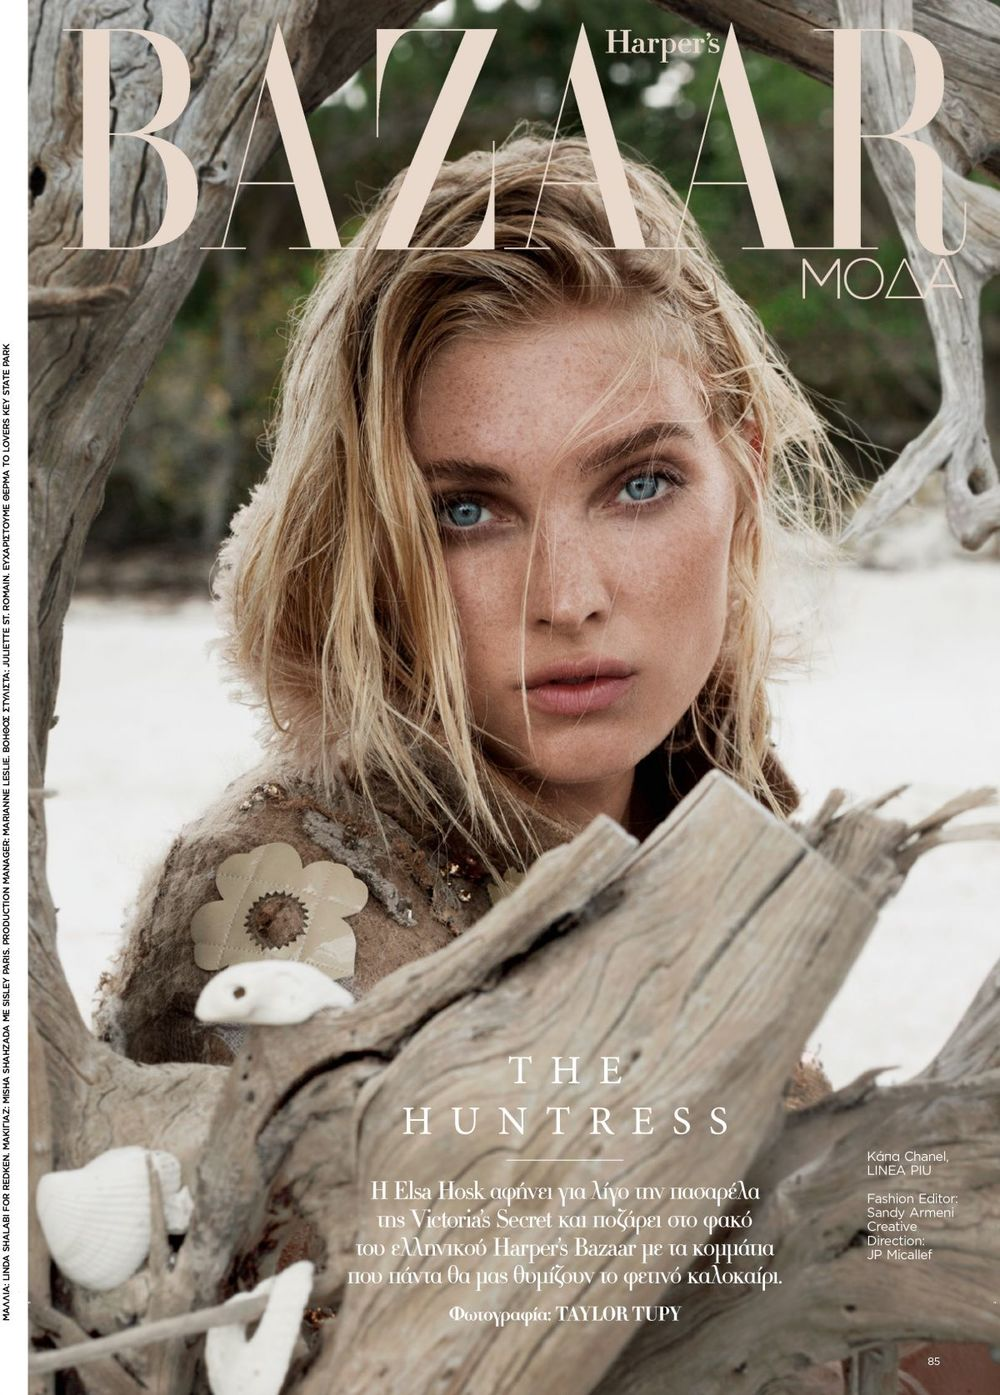 f0dc2-elsa-hosk-in-harper-s-bazaar-magazine-greece-august-2016-issue_3.jpg